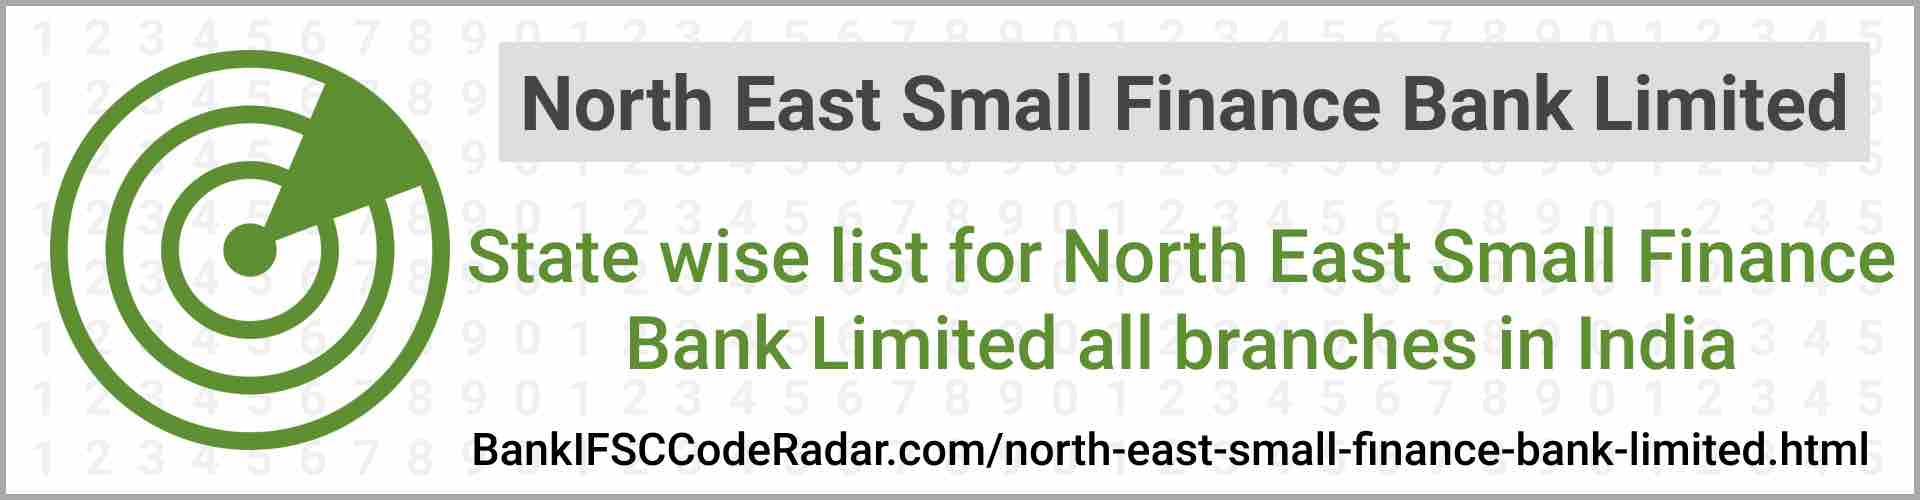 North East Small Finance Bank Limited All Branches India